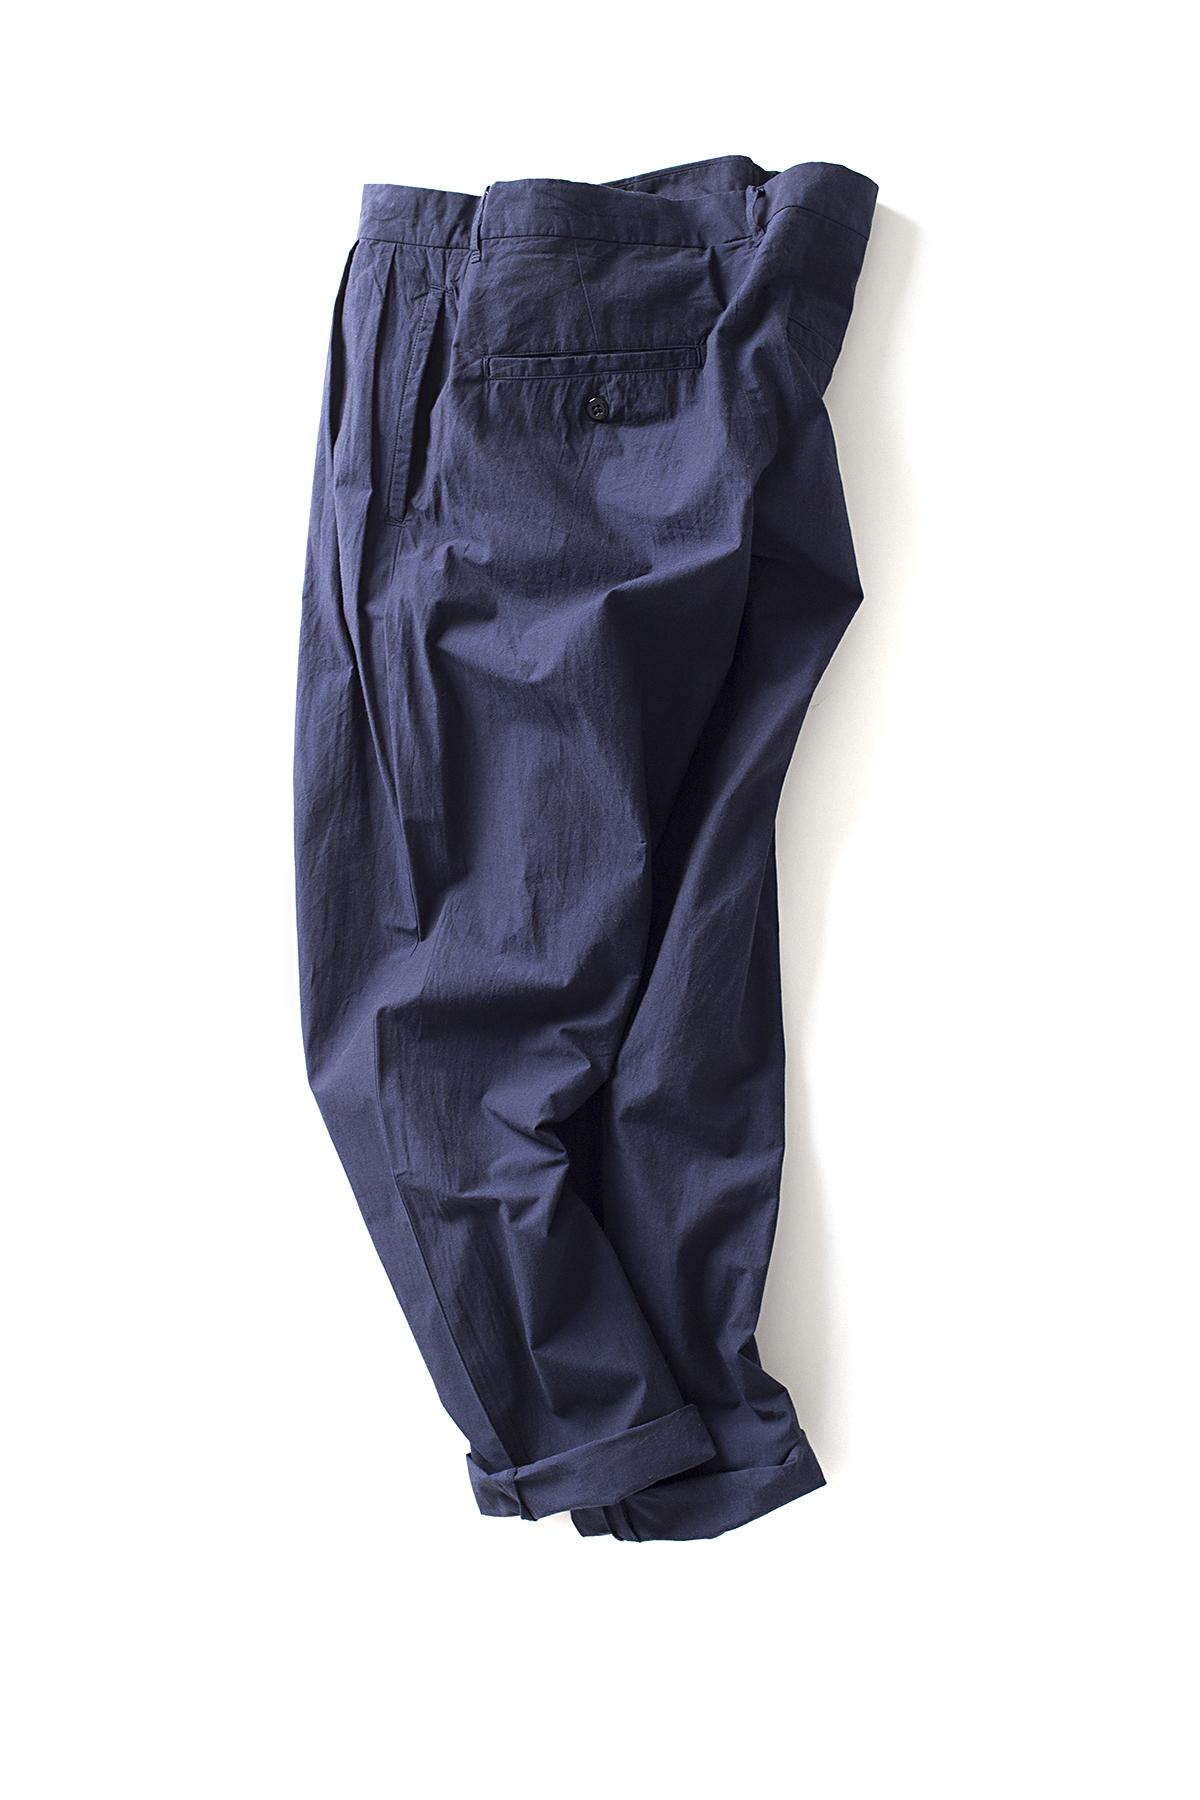 maillot : Heather Cotton Tuck Tapered Pants (Navy)